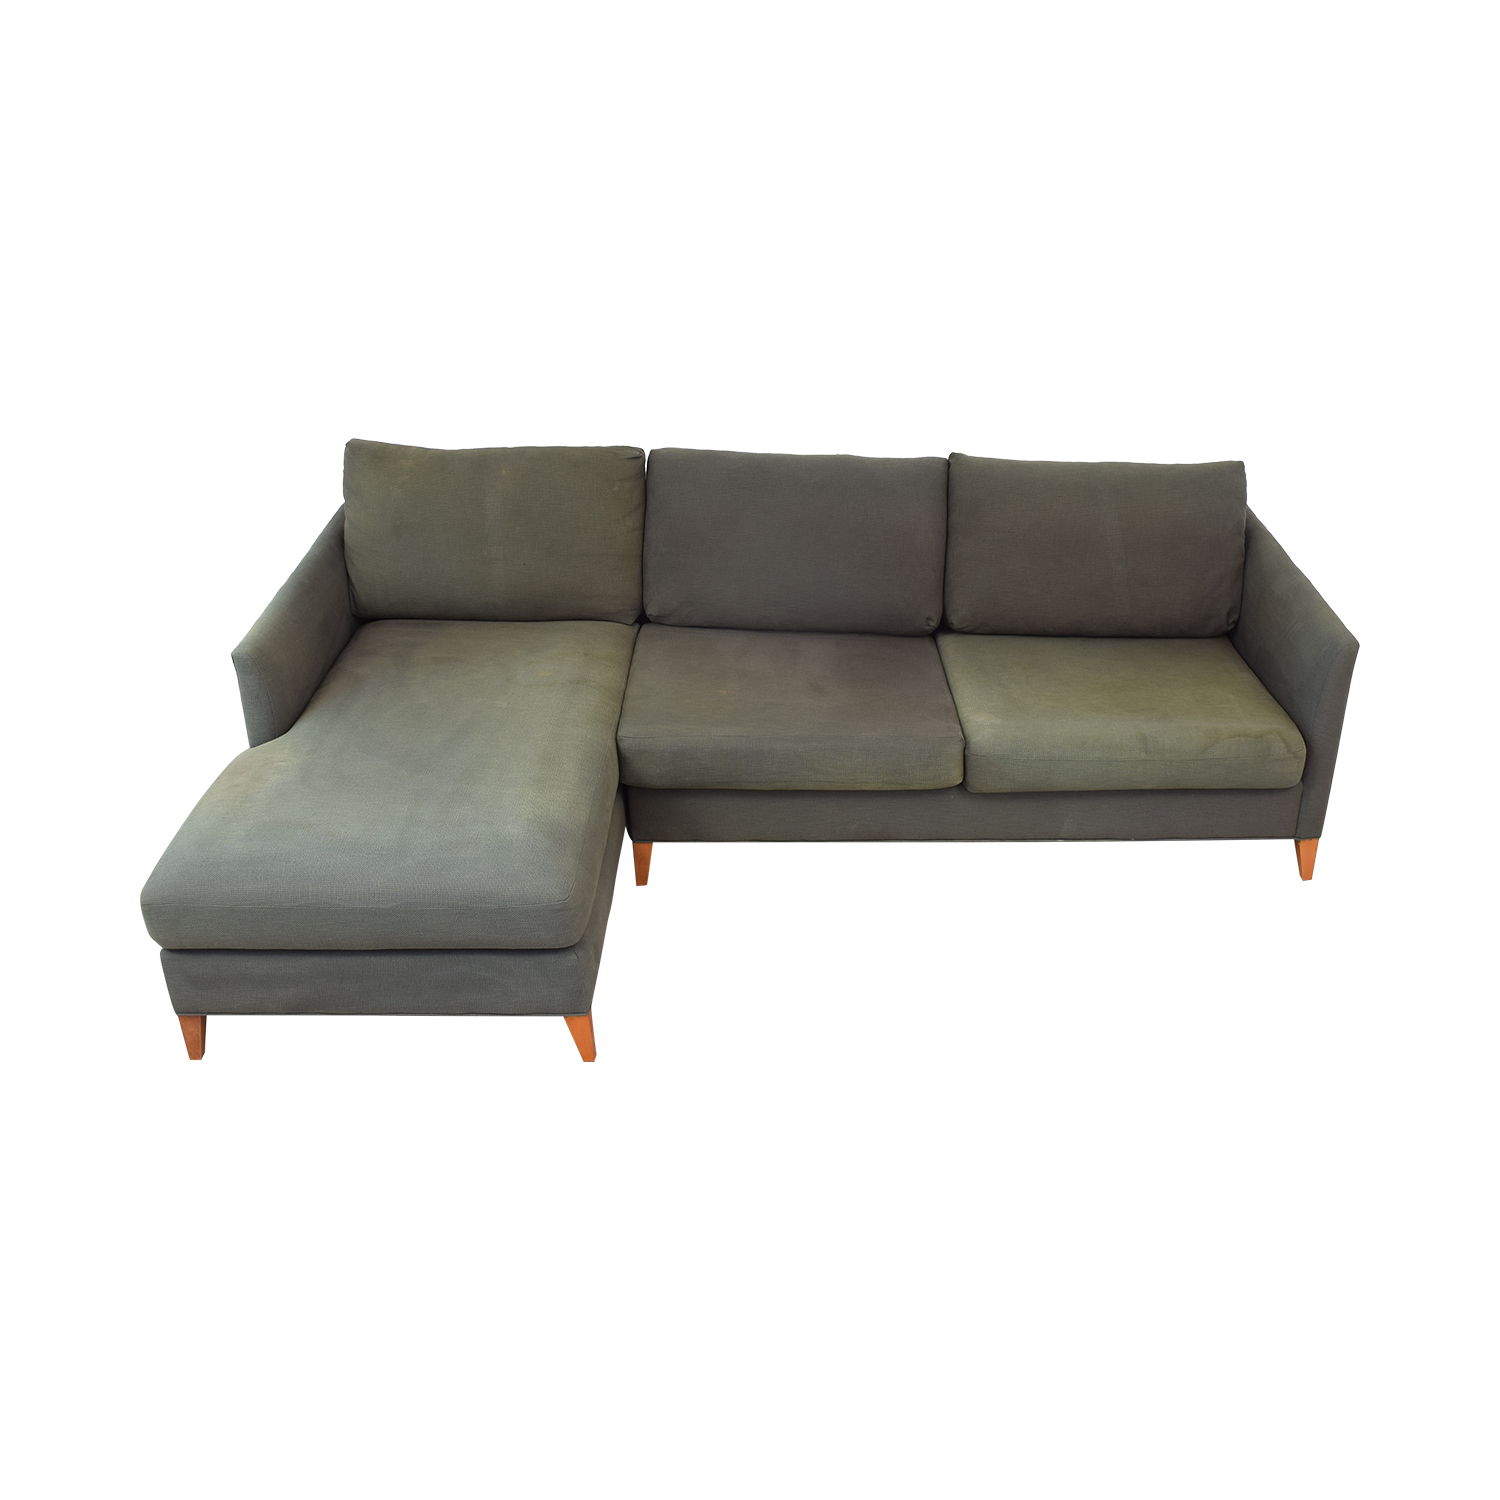 Crate & Barrel Crate & Barrel Two Piece Sectional with Chaise second hand